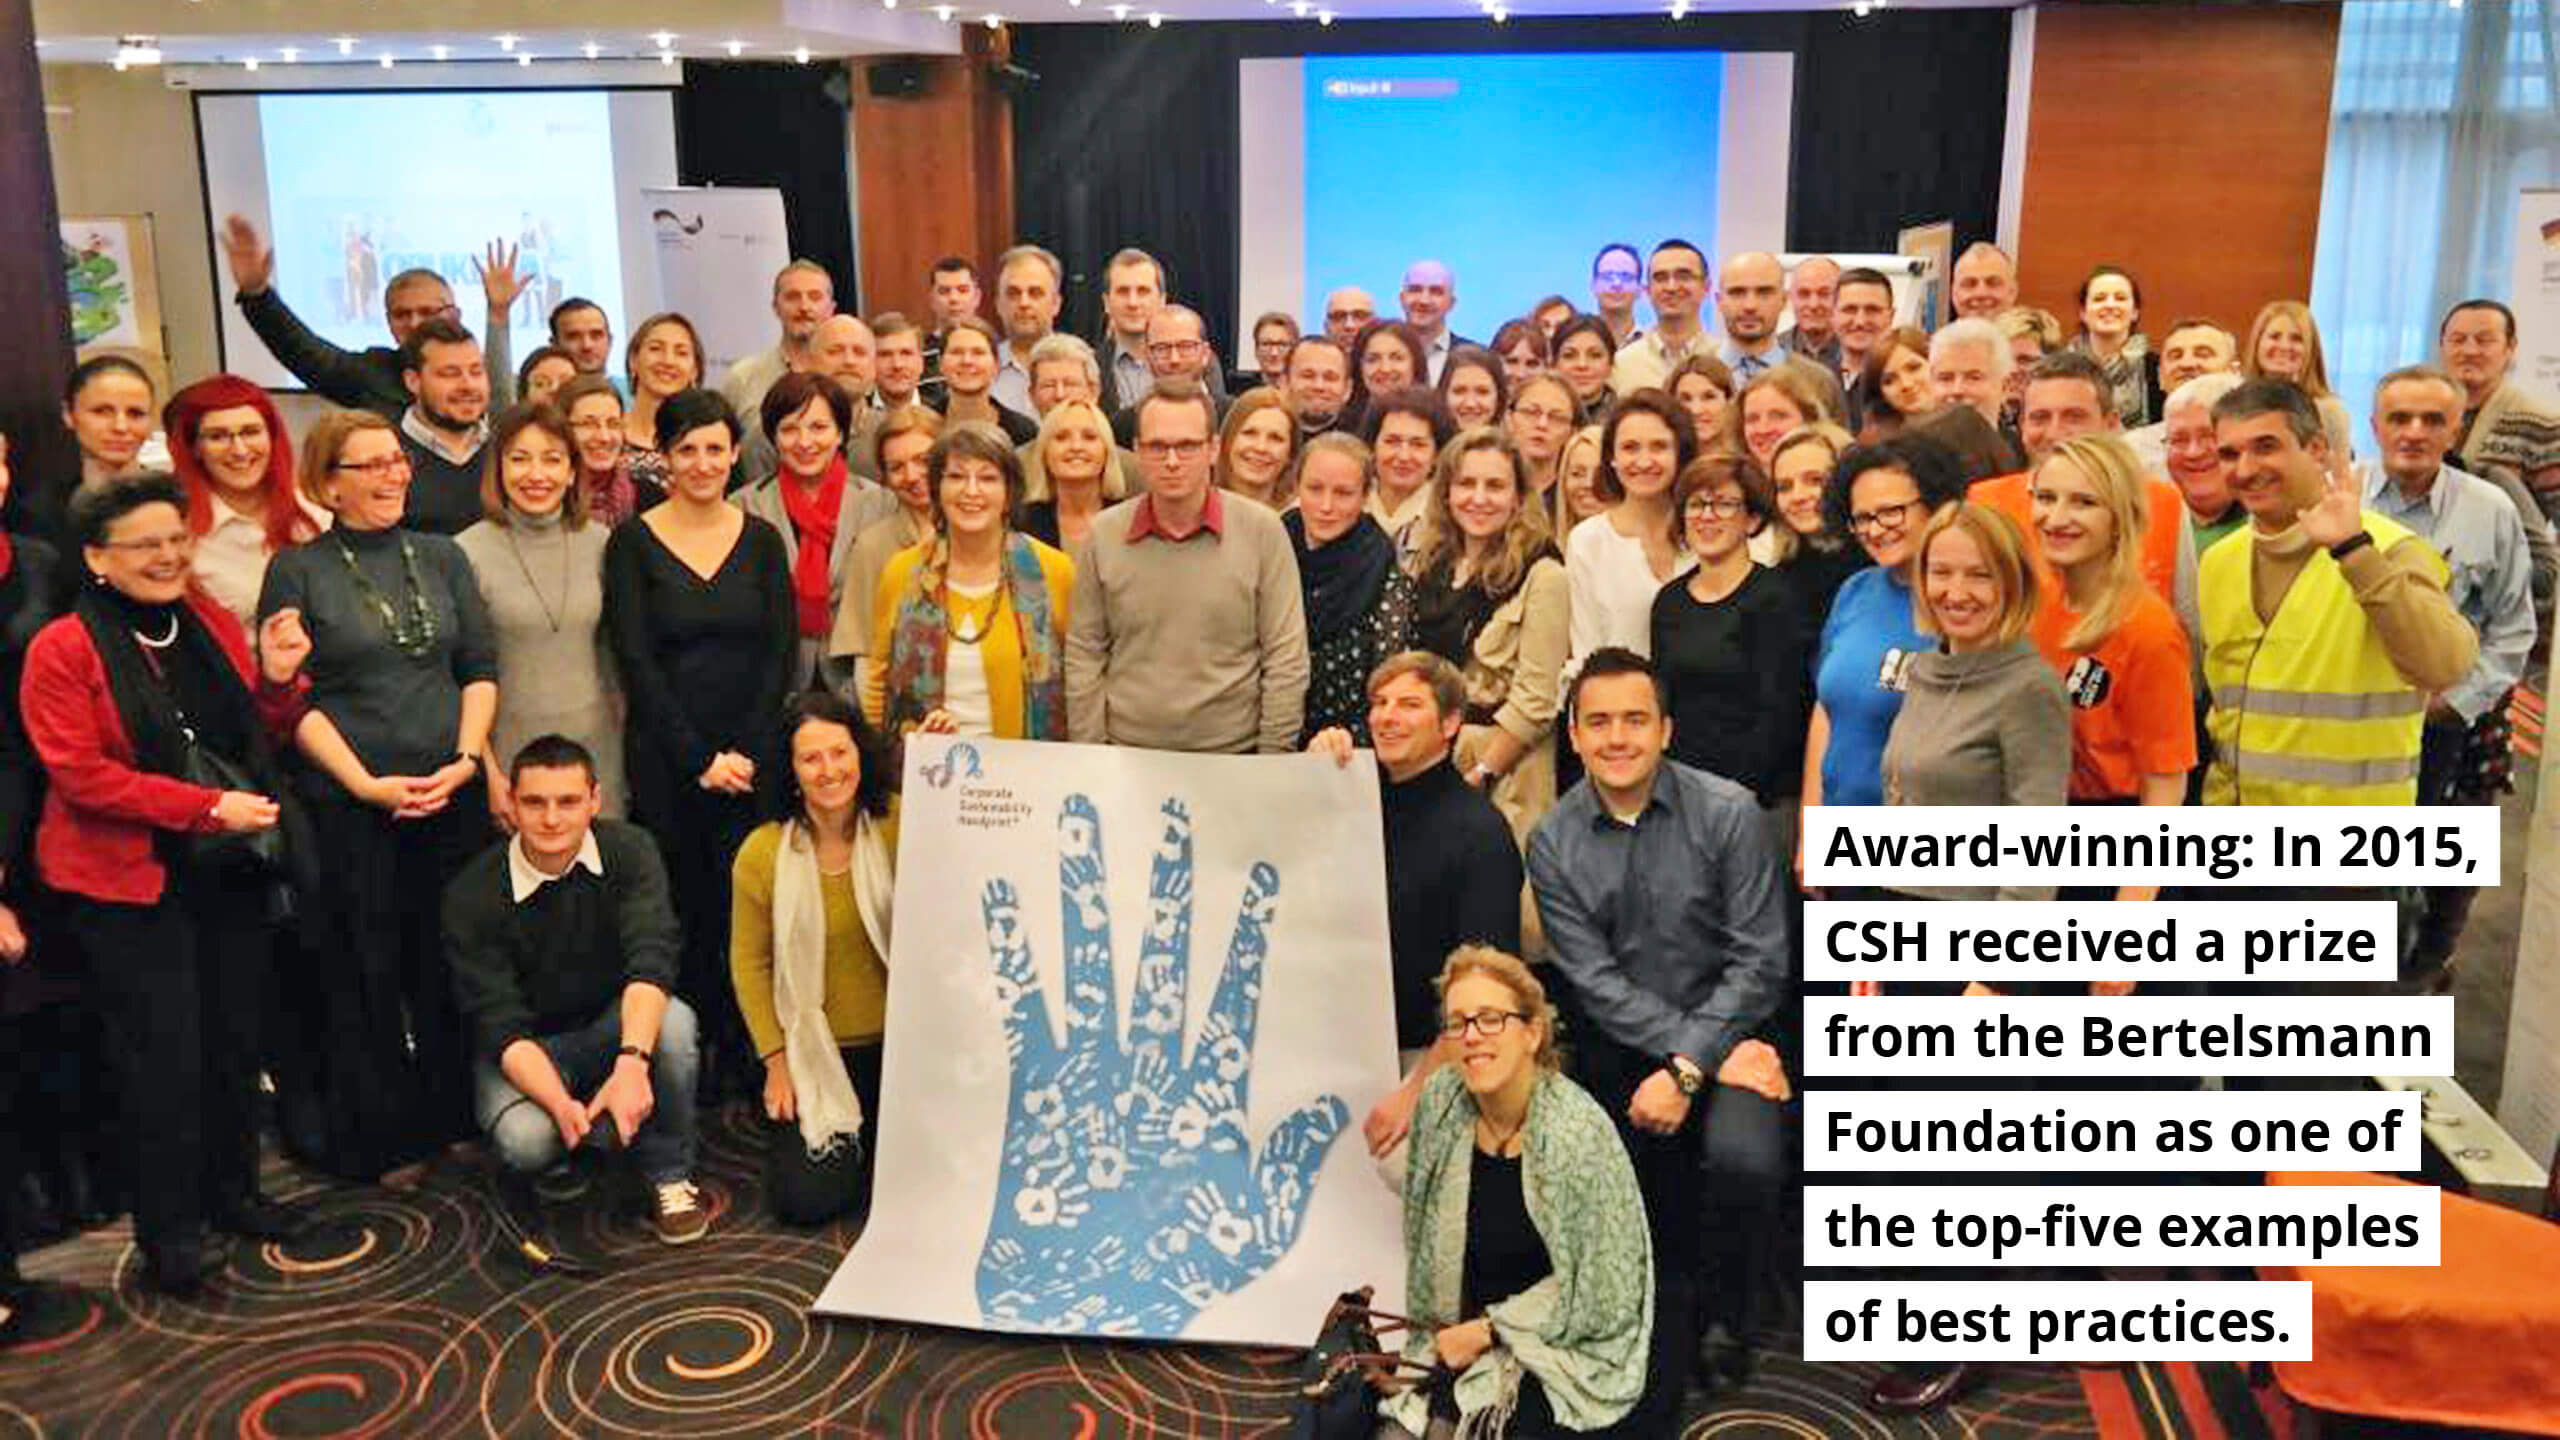 Award winning: In 2015, CSH received a price from Bertelsmann Foundation as one of the top-five examples of best practices.